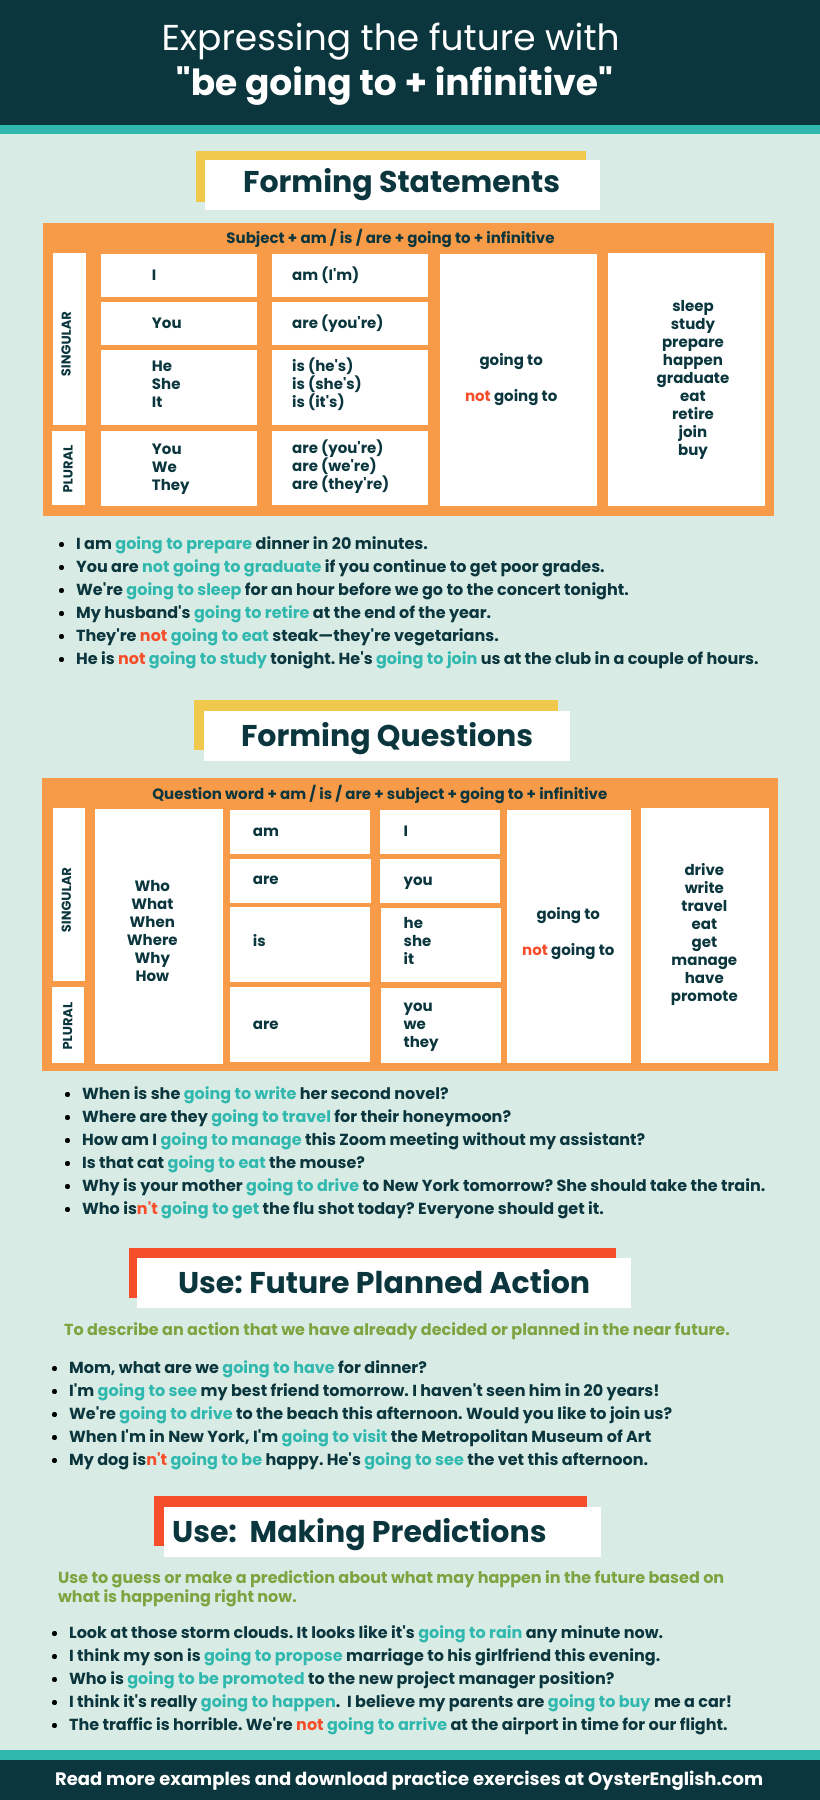 Infographic describing how to form and use